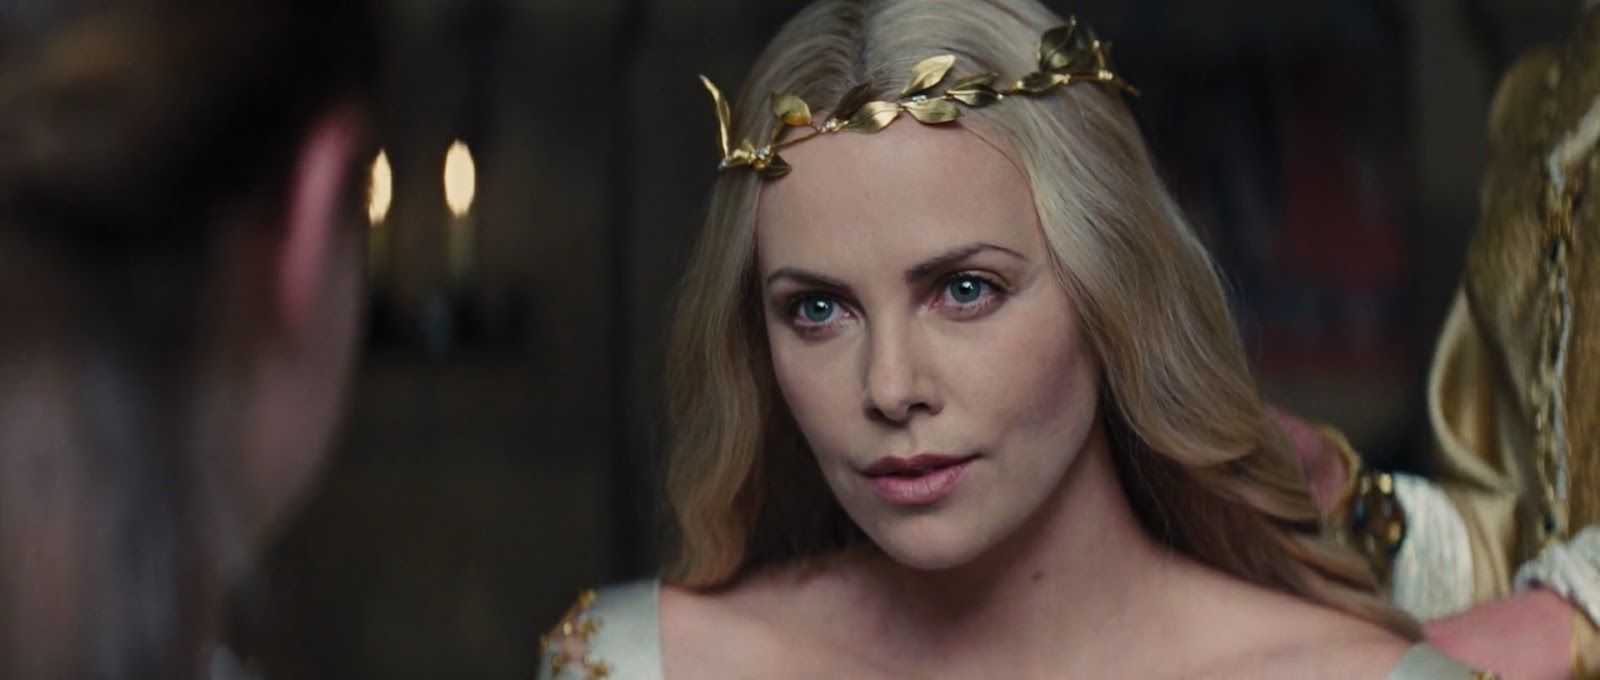 Snow White and the Huntsman (2012) 2